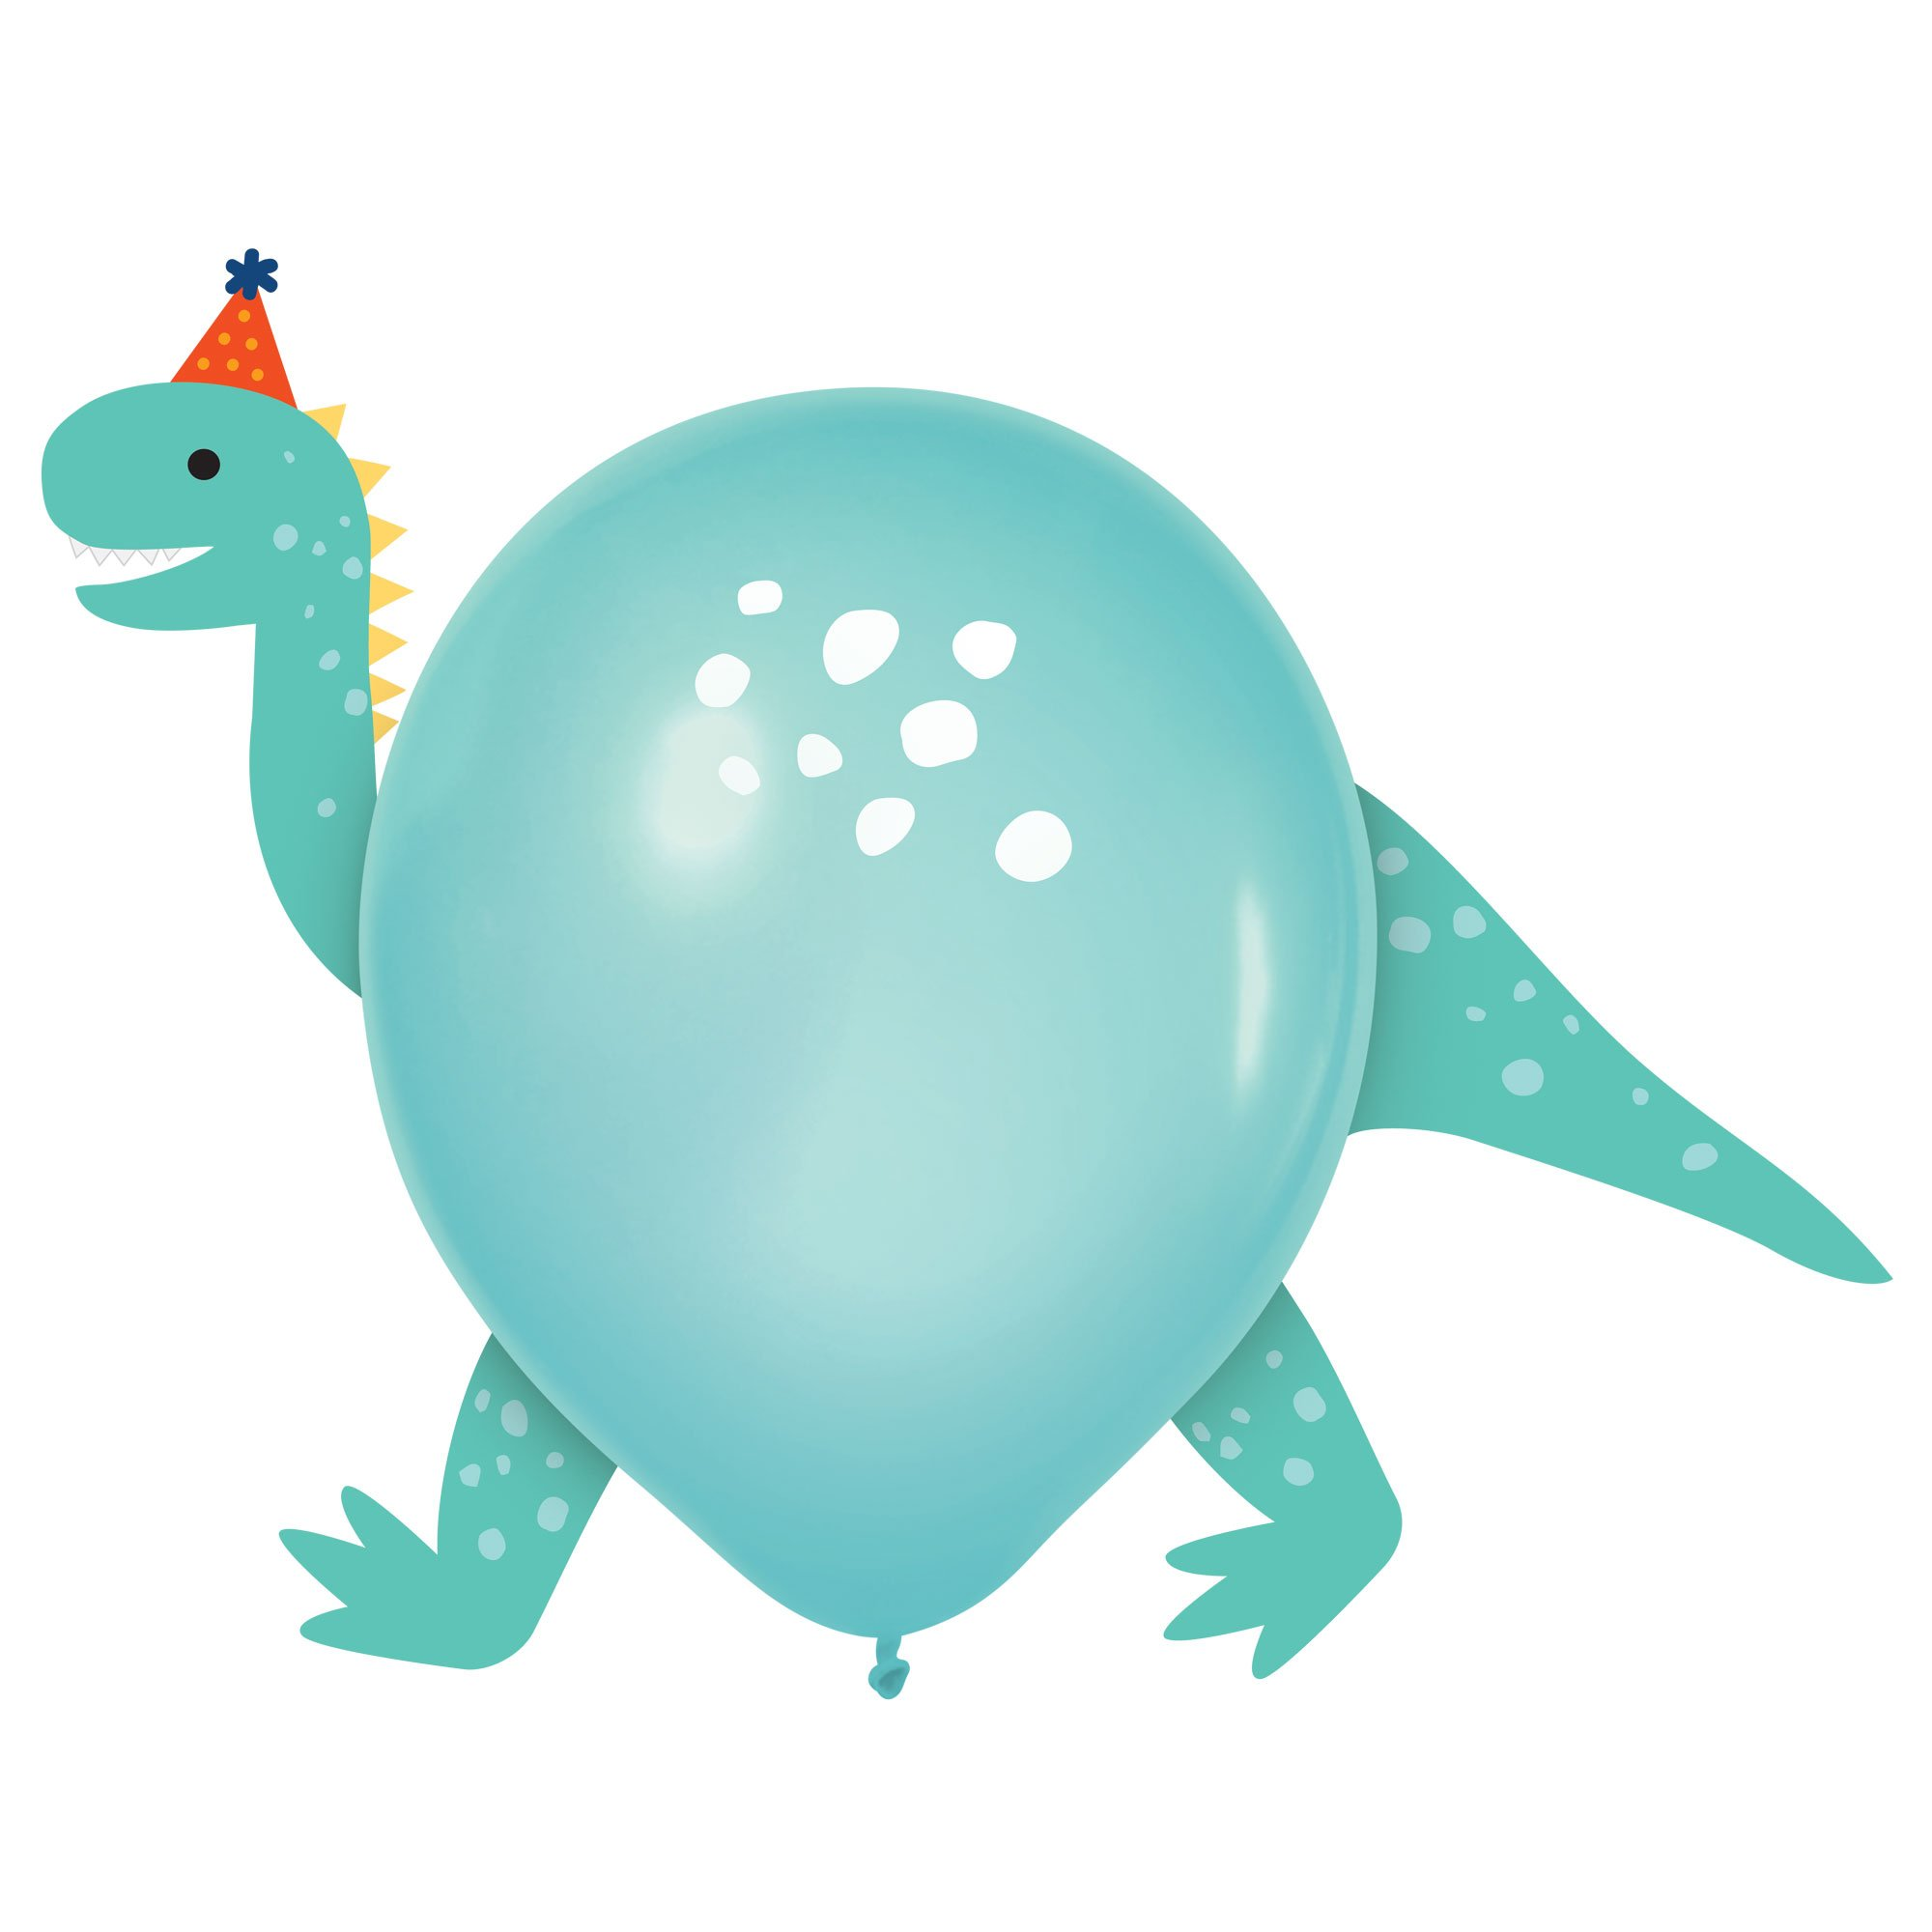 Dino-Mite Party Dinosaurs 30cm Latex Balloons & Paper Adhesive Add-Ons